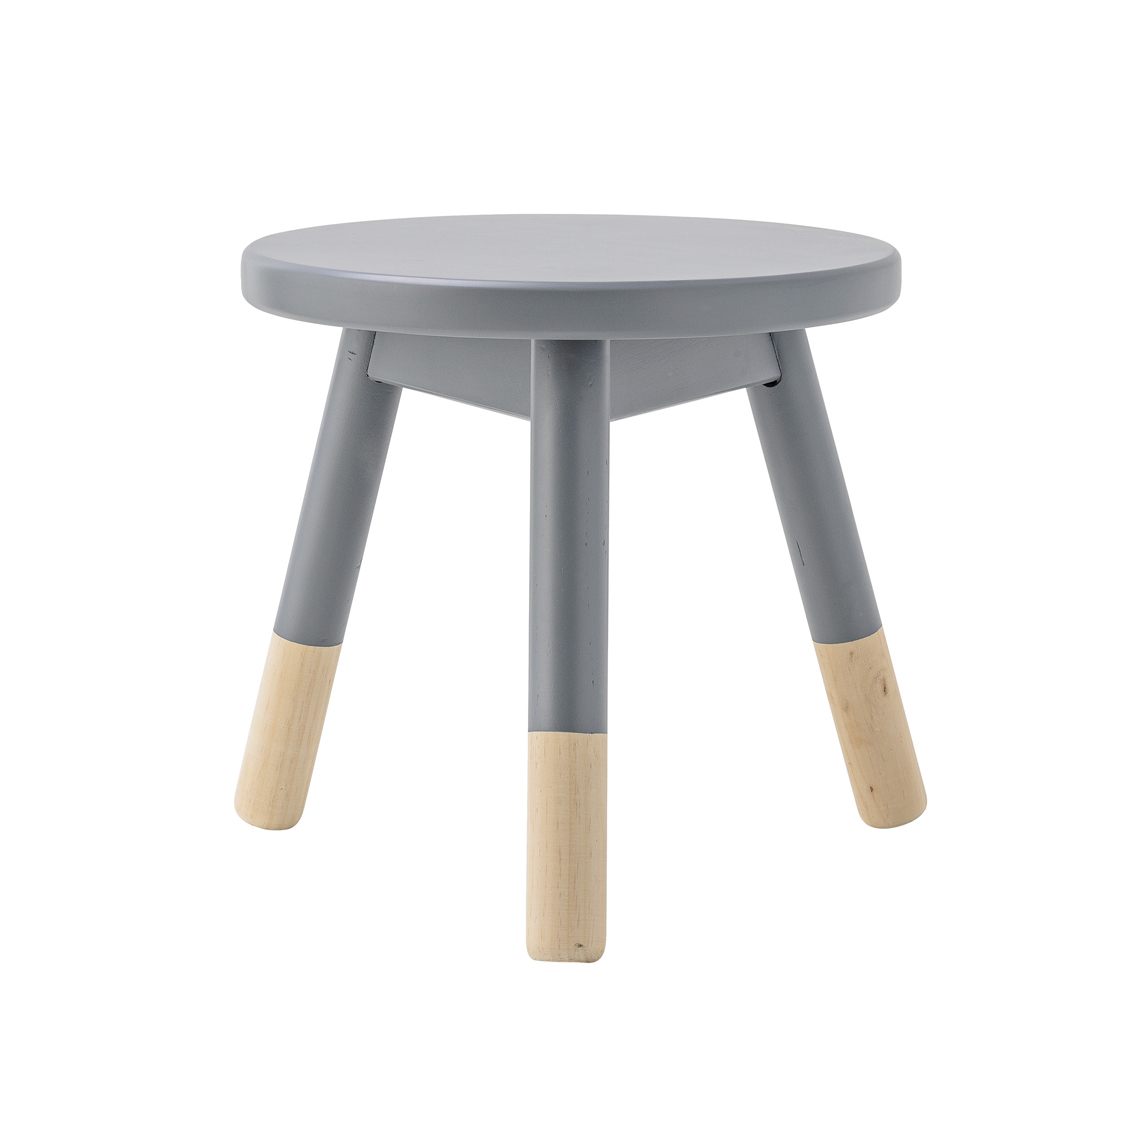 tabouret enfant gris bloomingville pour chambre enfant les enfants du design. Black Bedroom Furniture Sets. Home Design Ideas